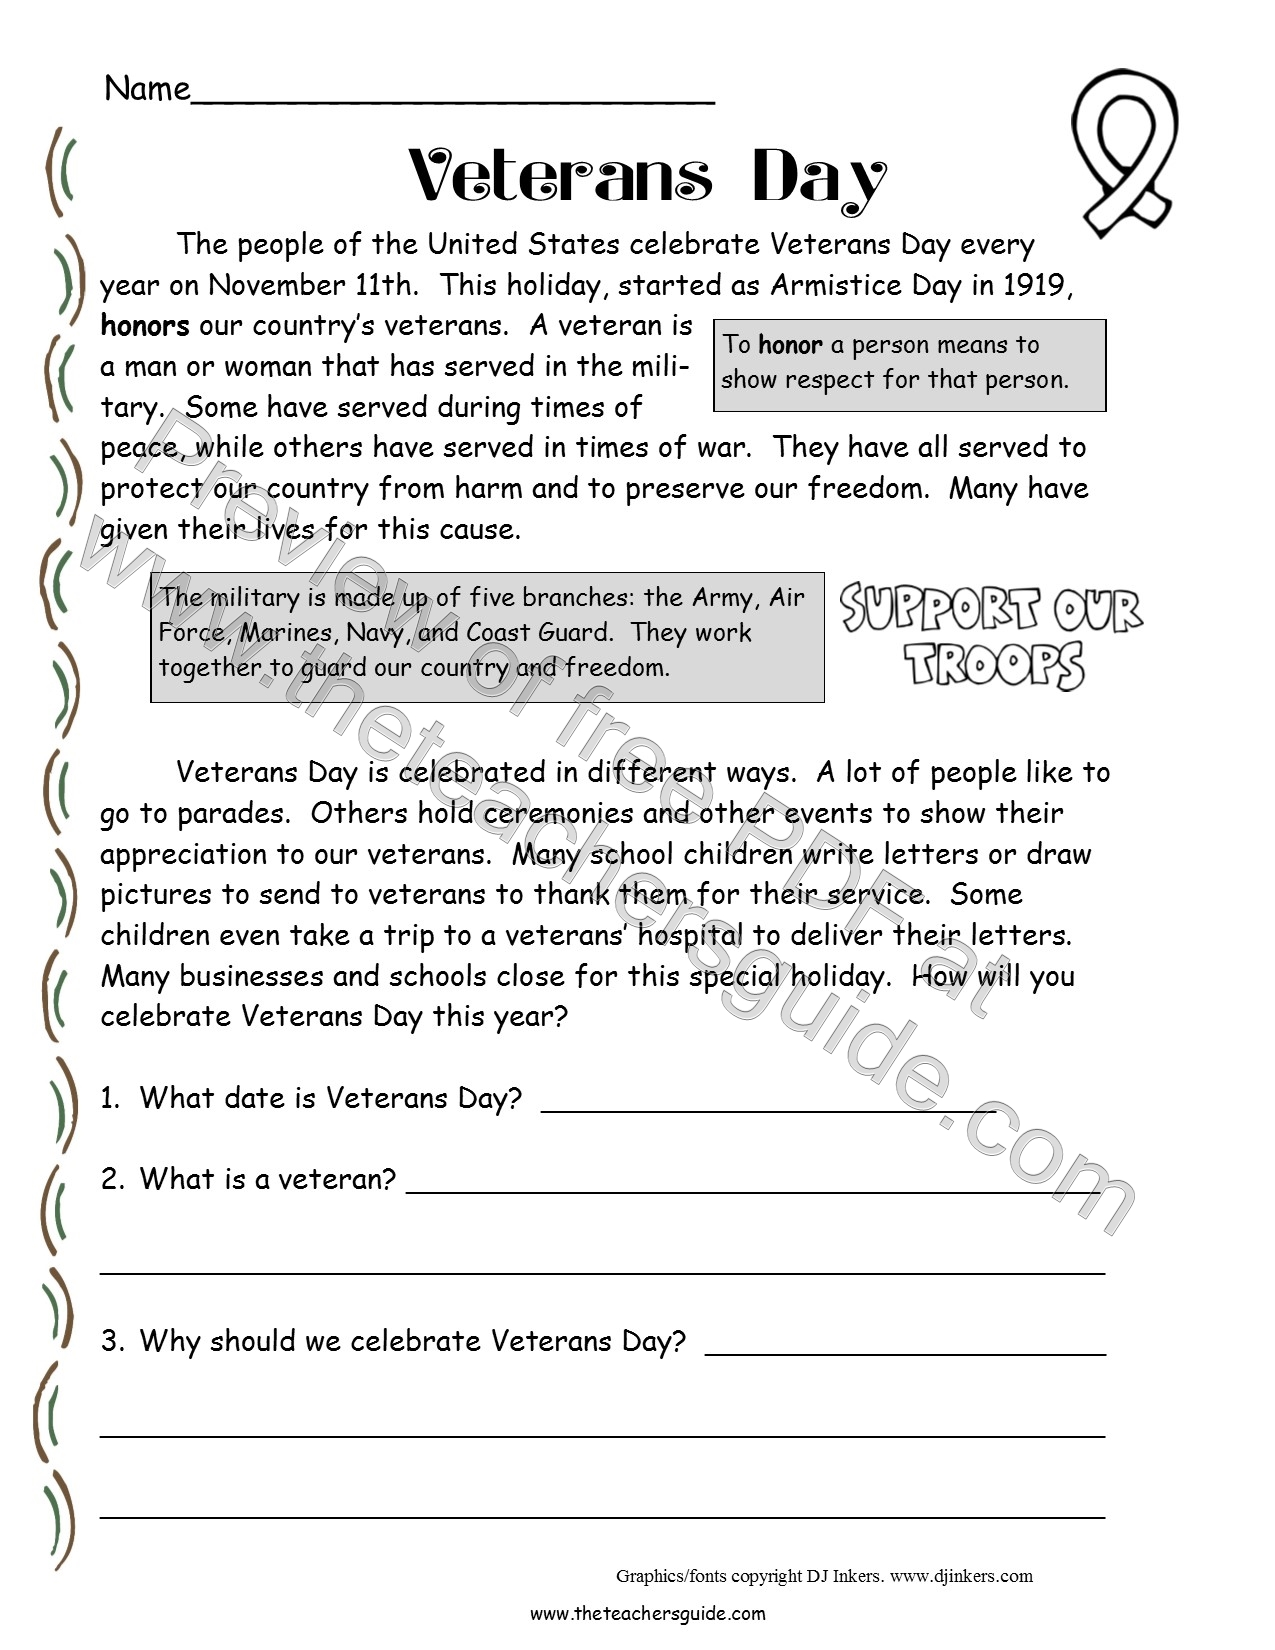 Worksheet 4th Grade Short Stories veterans day lesson plans themes printouts crafts comprehension story